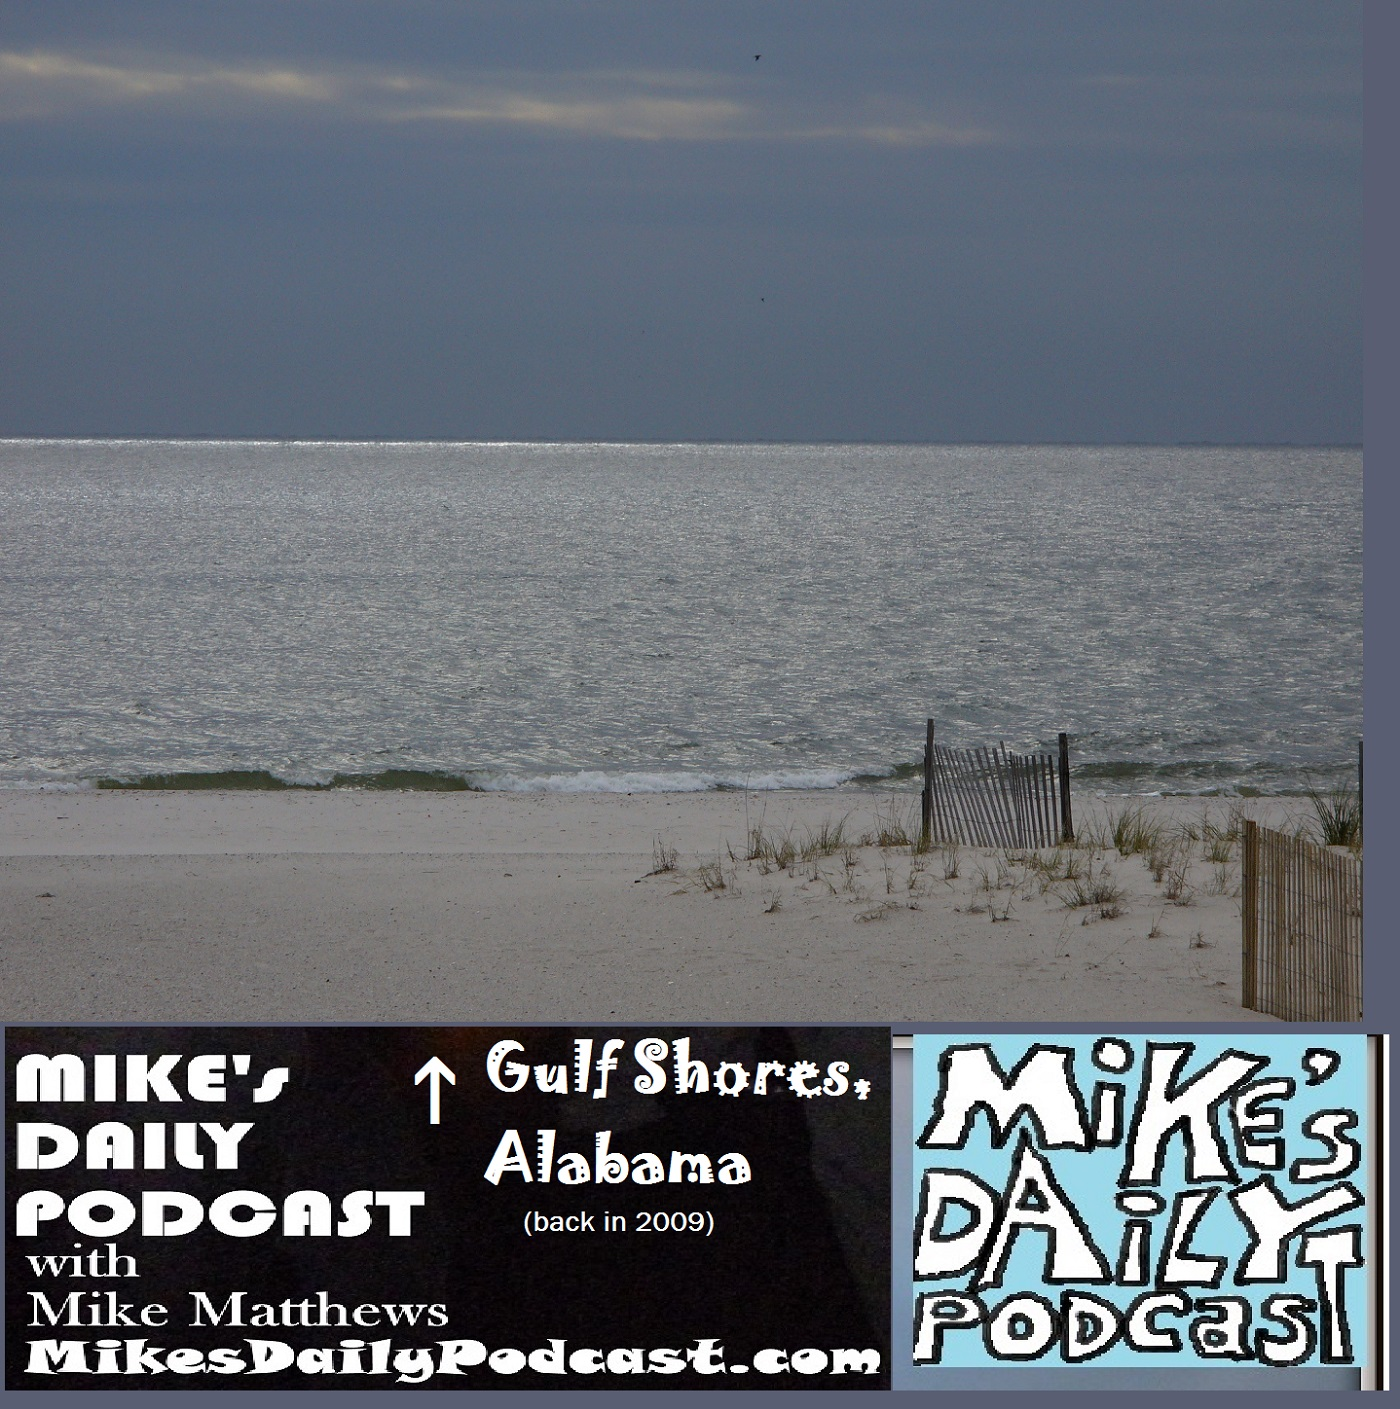 mikes-daily-podcast-1176-gulf-shores-alabama